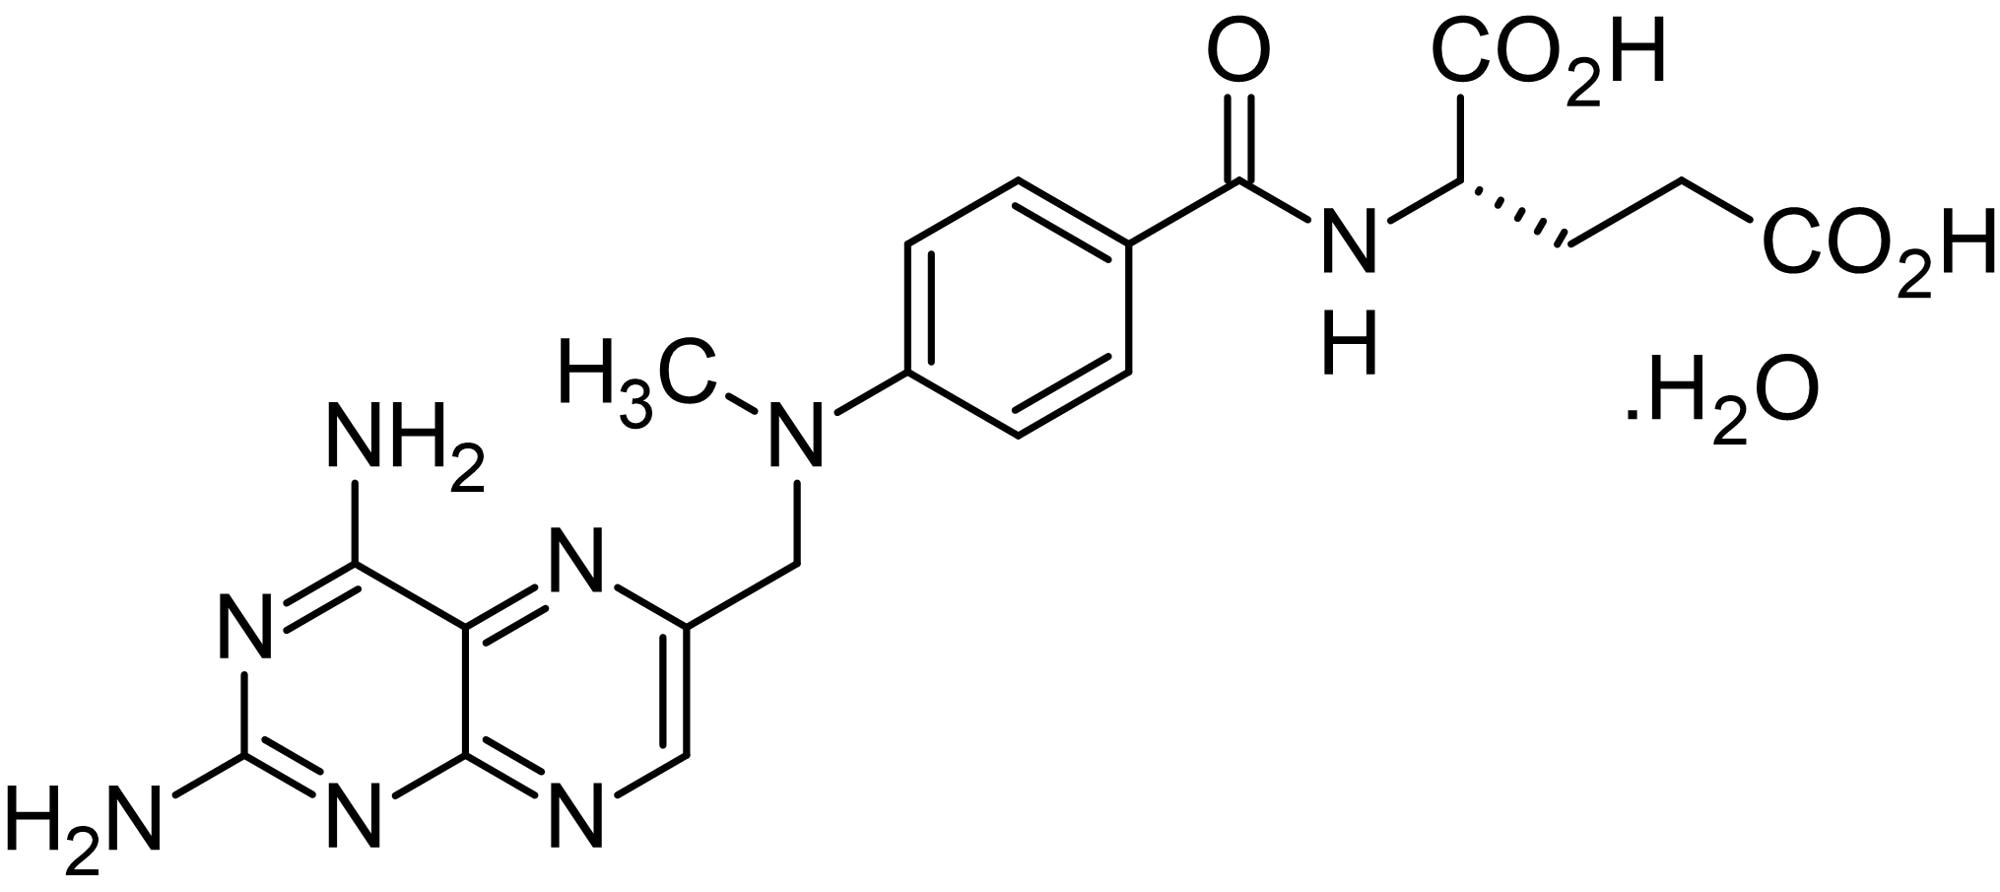 Chemical Structure - Methotrexate hydrate, DHFR inhibitor (ab142445)